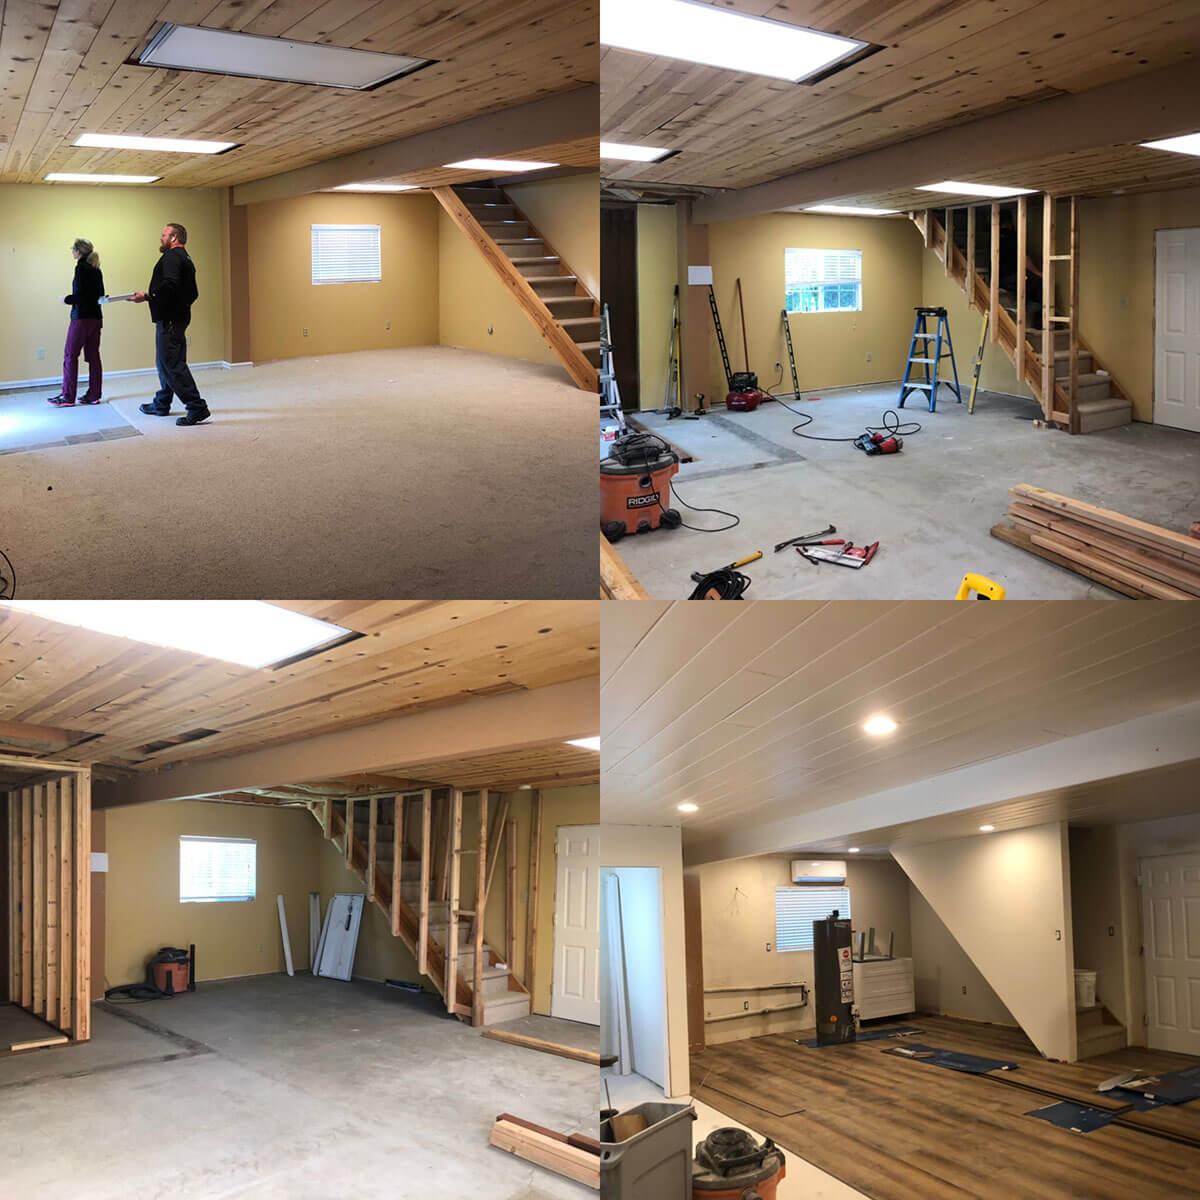 Progress of the casita remodel, focused on the staircase